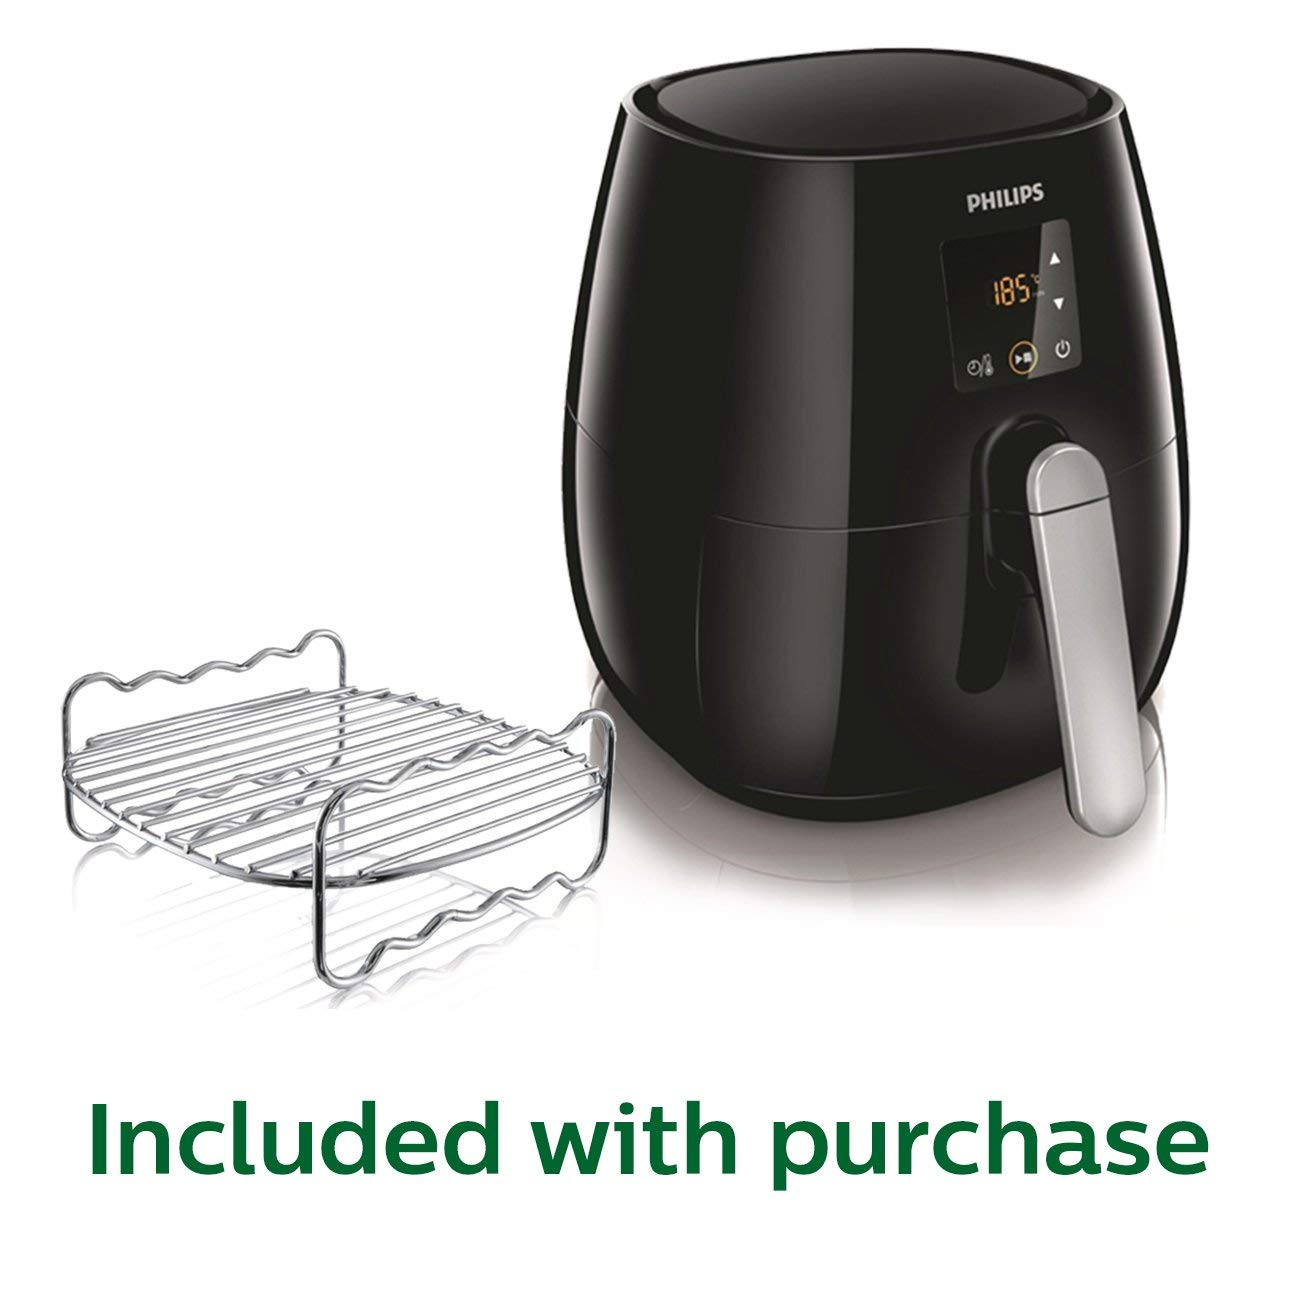 Philips digital air fryer